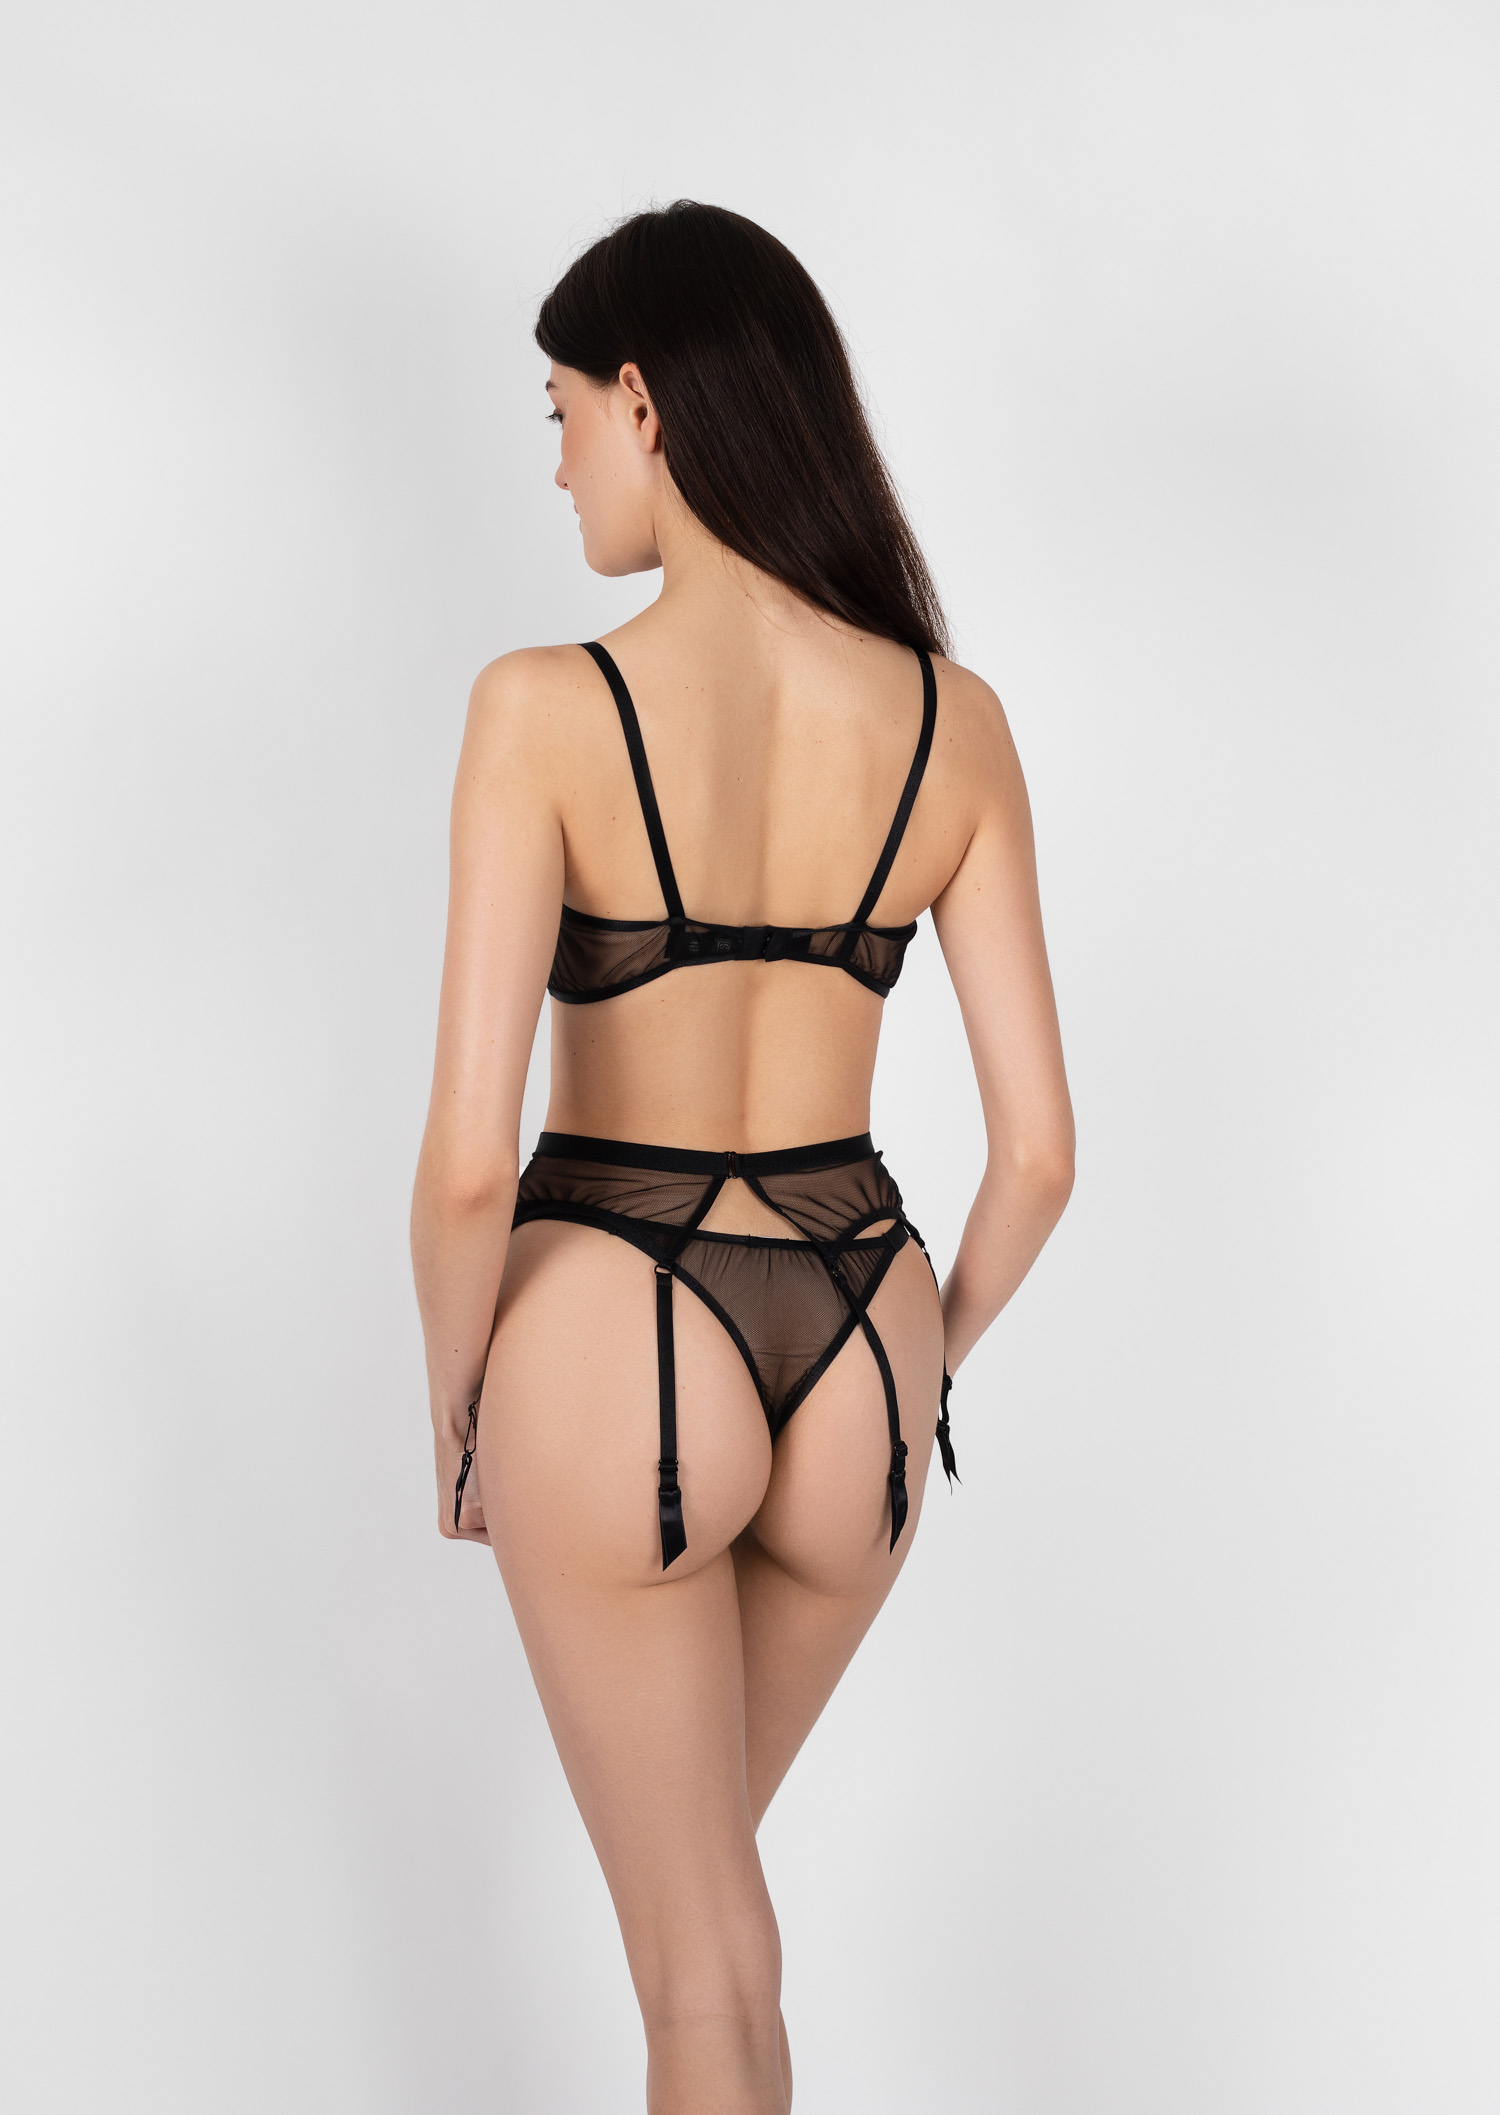 Poema lingerie set / transparent sexy black lingerie with garter belt / sheer underwired bra with high waist belt and thong panties